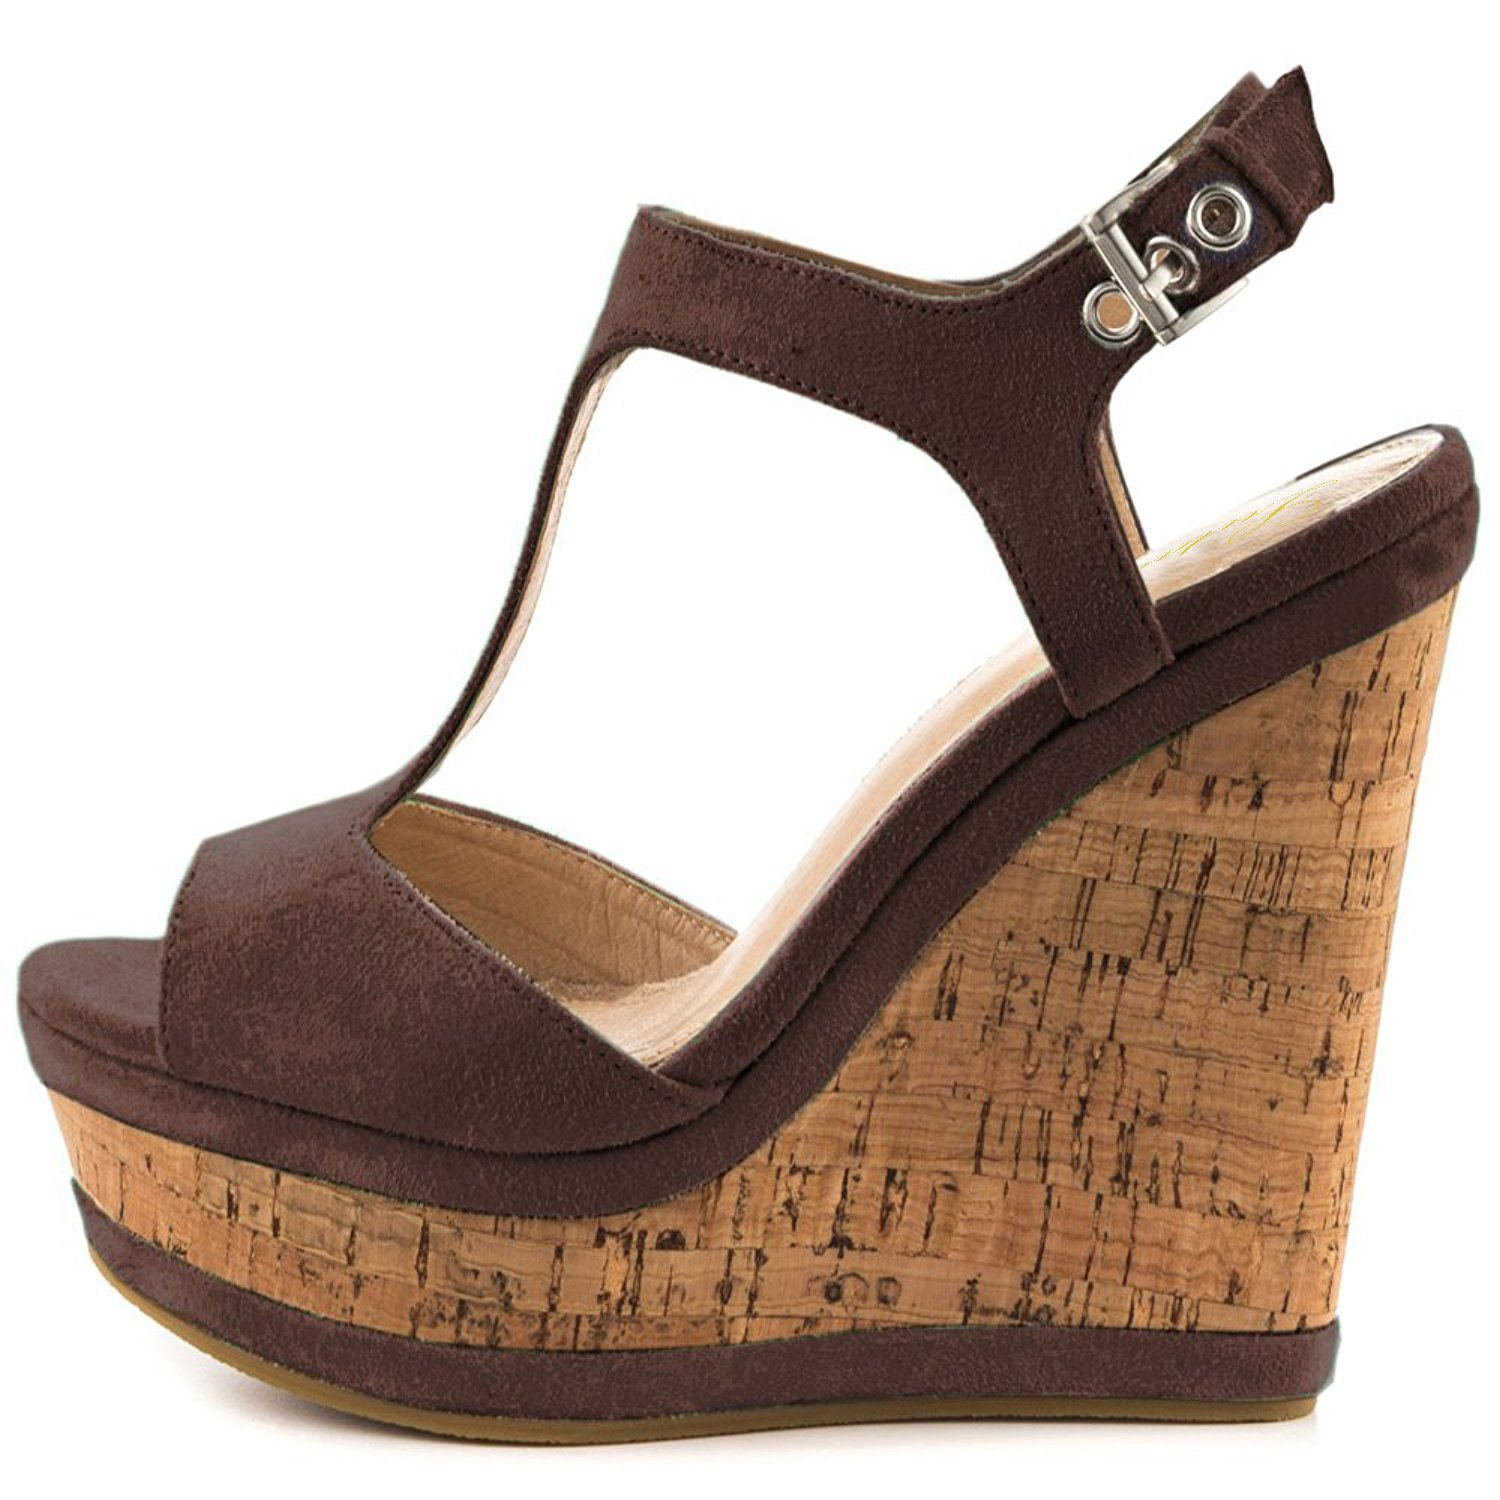 Brown Lutalica Women Sexy Suede Peep Toe Wedge Ankle Straps High Heel Summer Sandals Size 5.5-12 US